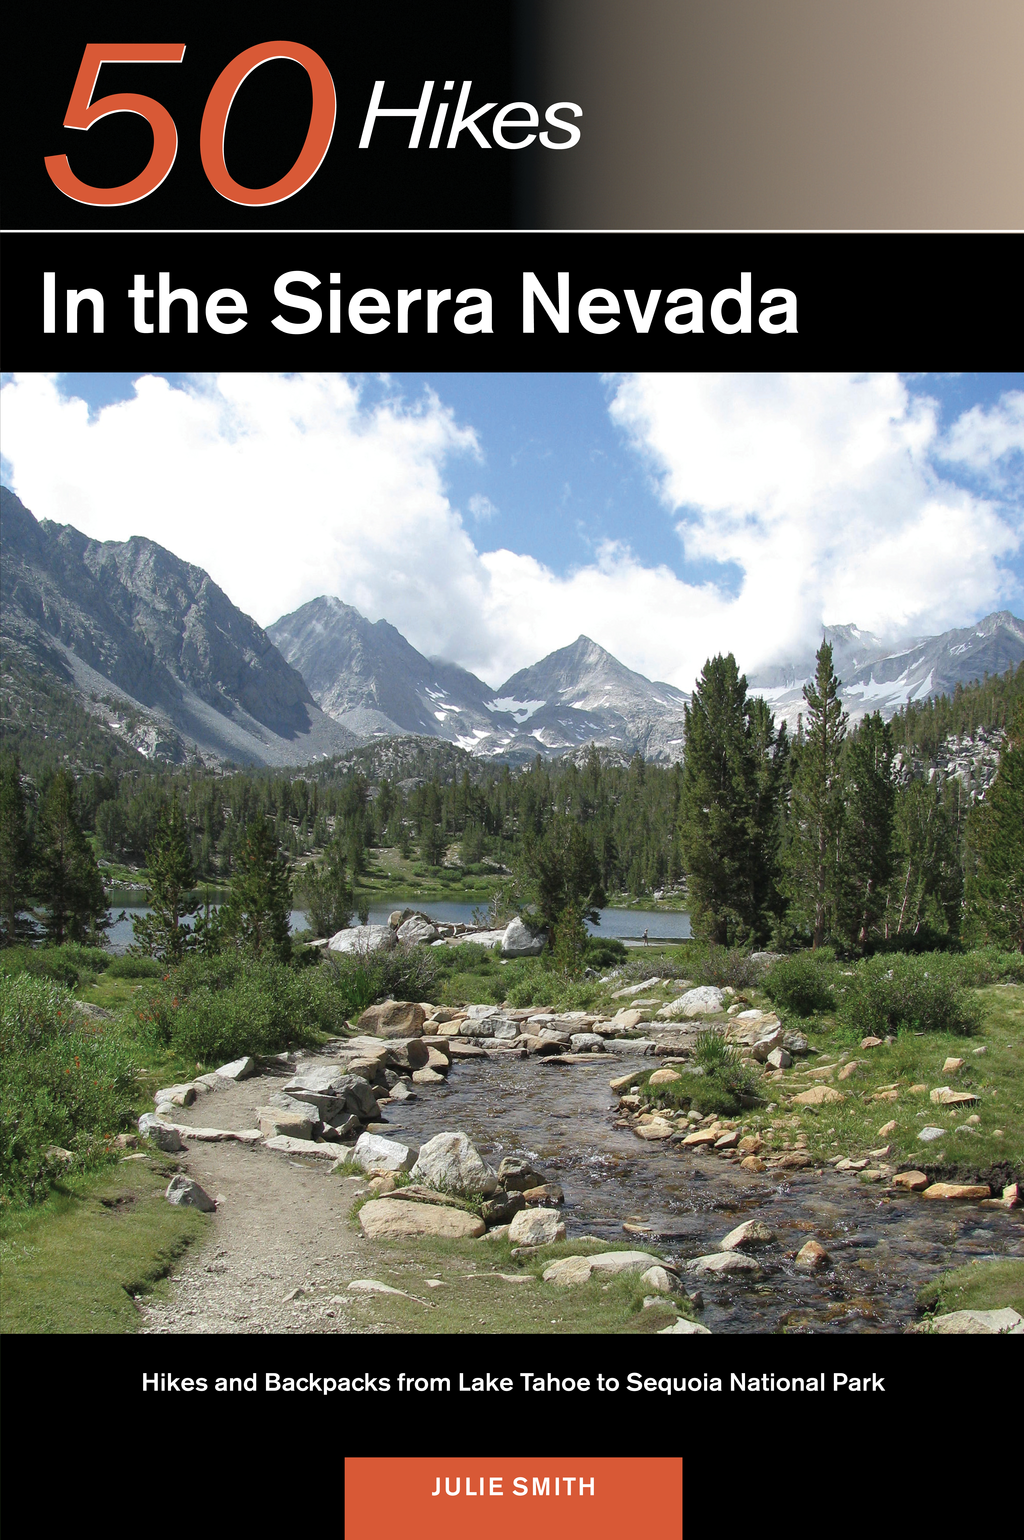 Explorer's Guide 50 Hikes in the Sierra Nevada: Hikes and Backpacks from Lake Tahoe to Sequoia National Park (Explorer's 50 Hikes) By: Julie Smith